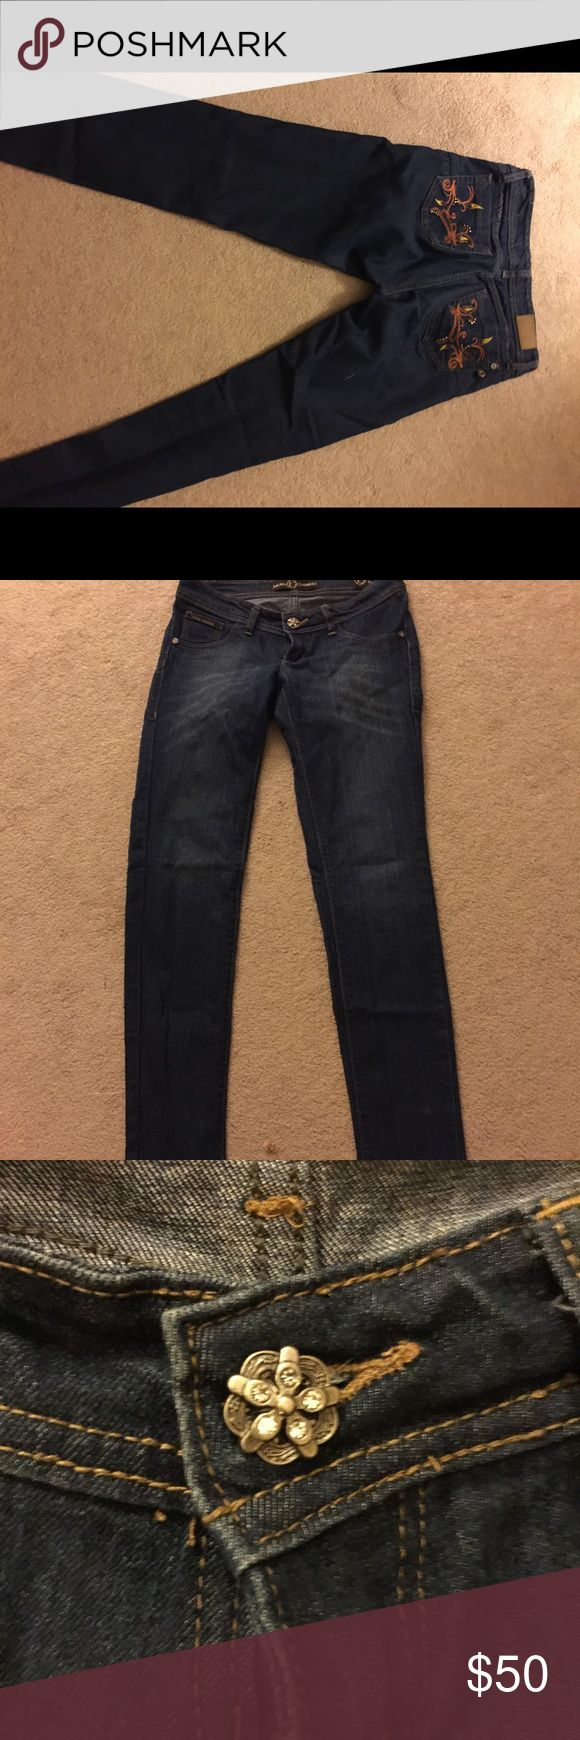 Jeans for Big booties with gorgeous details Sits Low on waist Jackie Guerrido Jeans Skinny